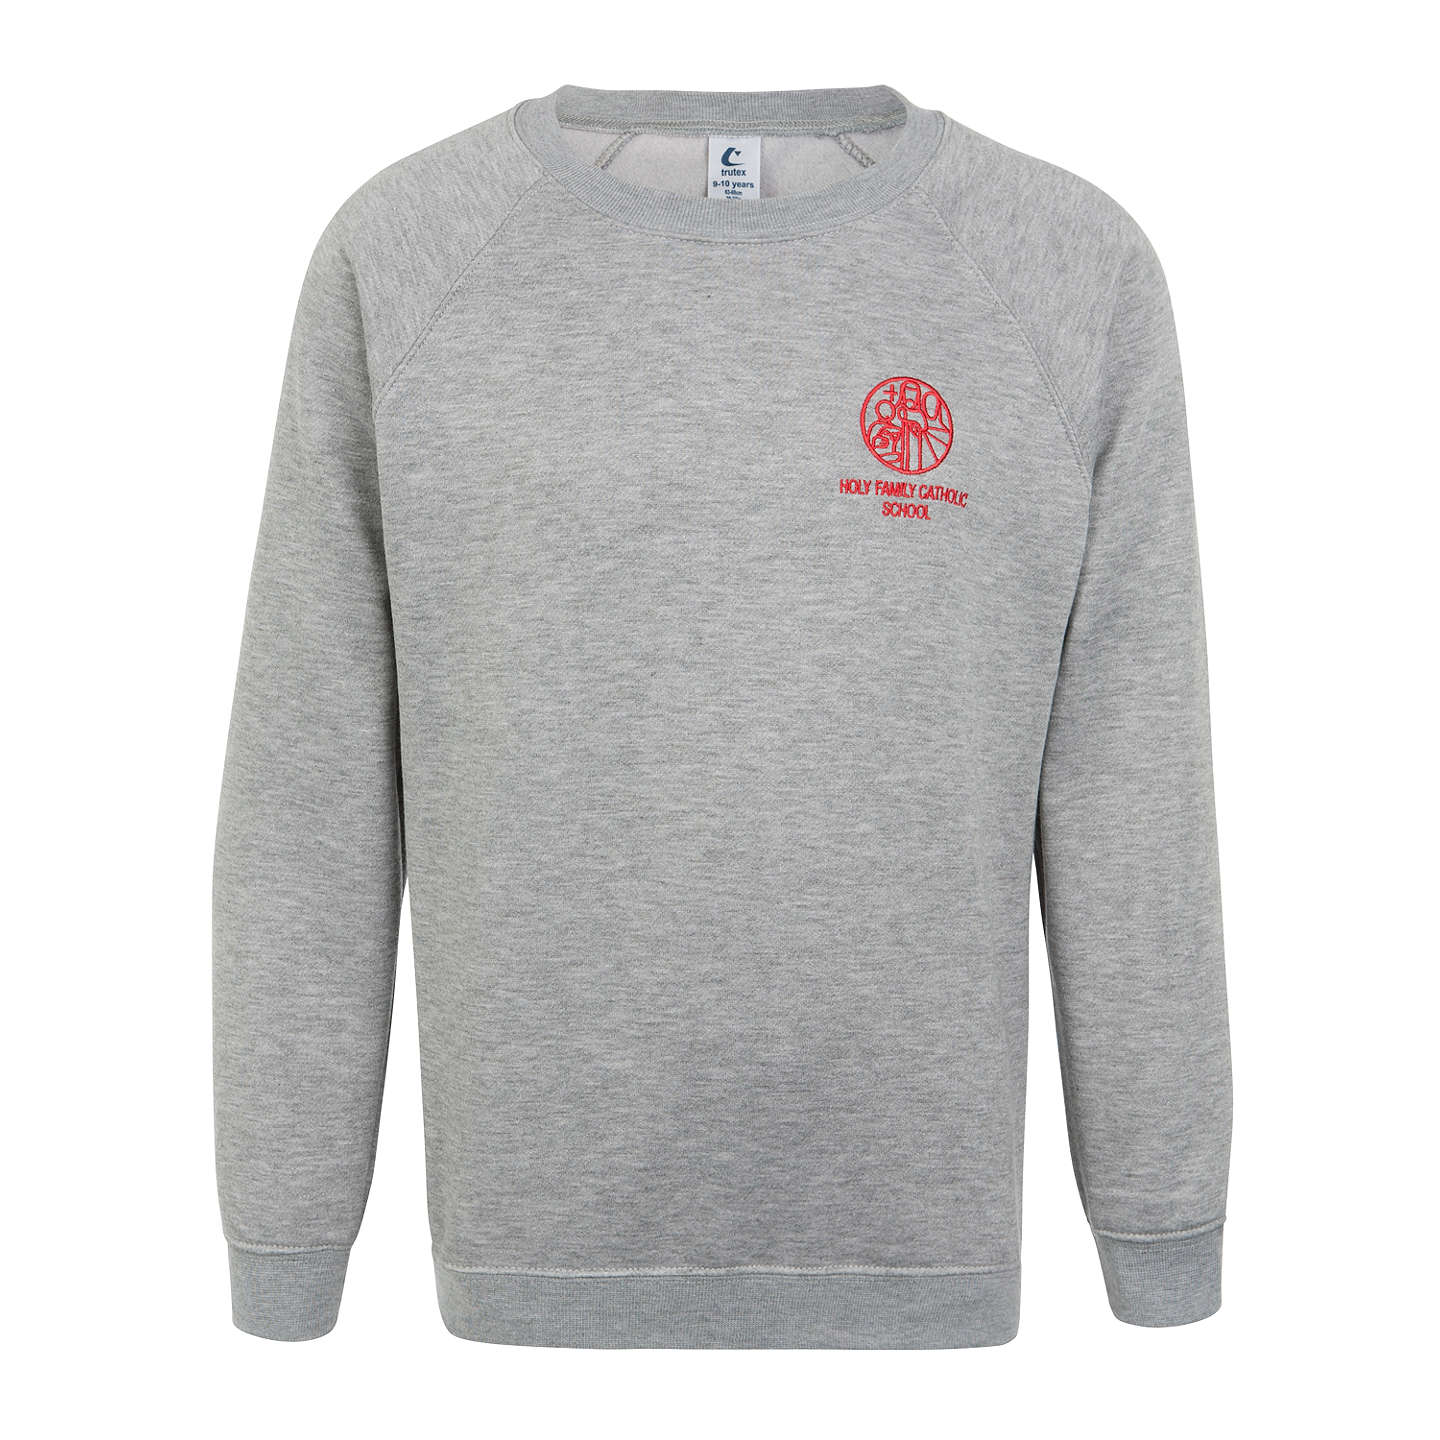 BuyHoly Family Catholic School and Sixth Form Jumper, Grey, XXS Online at johnlewis.com